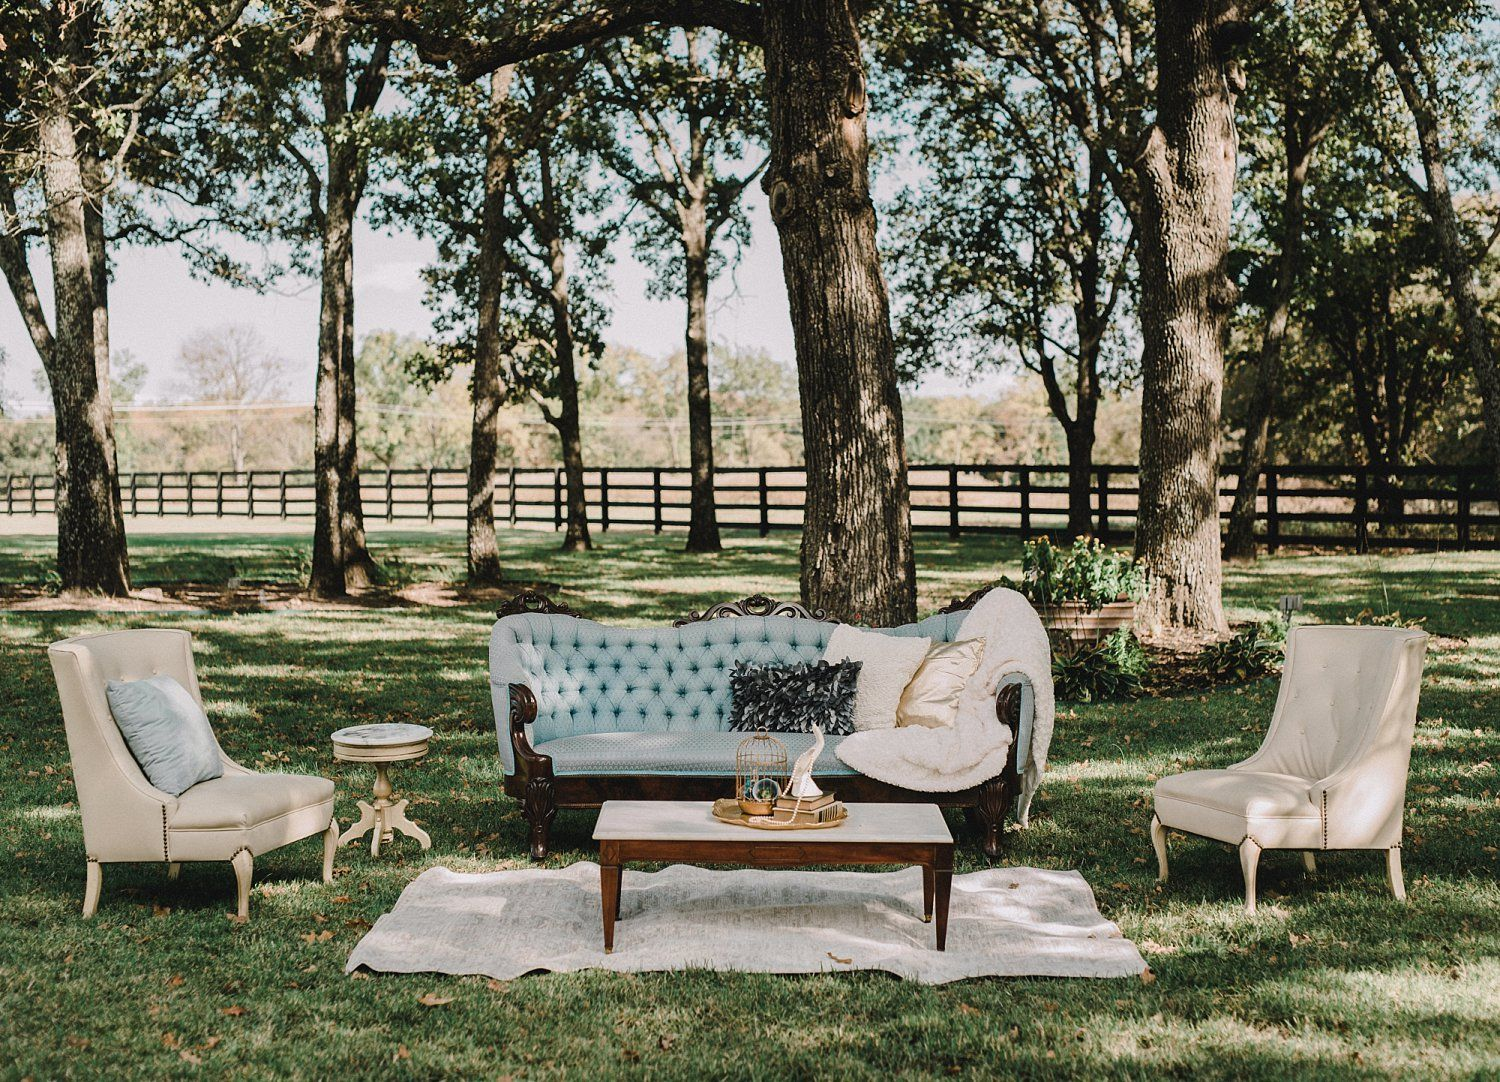 Rachel Cord Wedding Dallas Rent My Dust Vintage Rentals White Sparrow Barn 11 Jpg In 2020 Wedding Lounge Area White Sparrow Barn Wedding Lounge